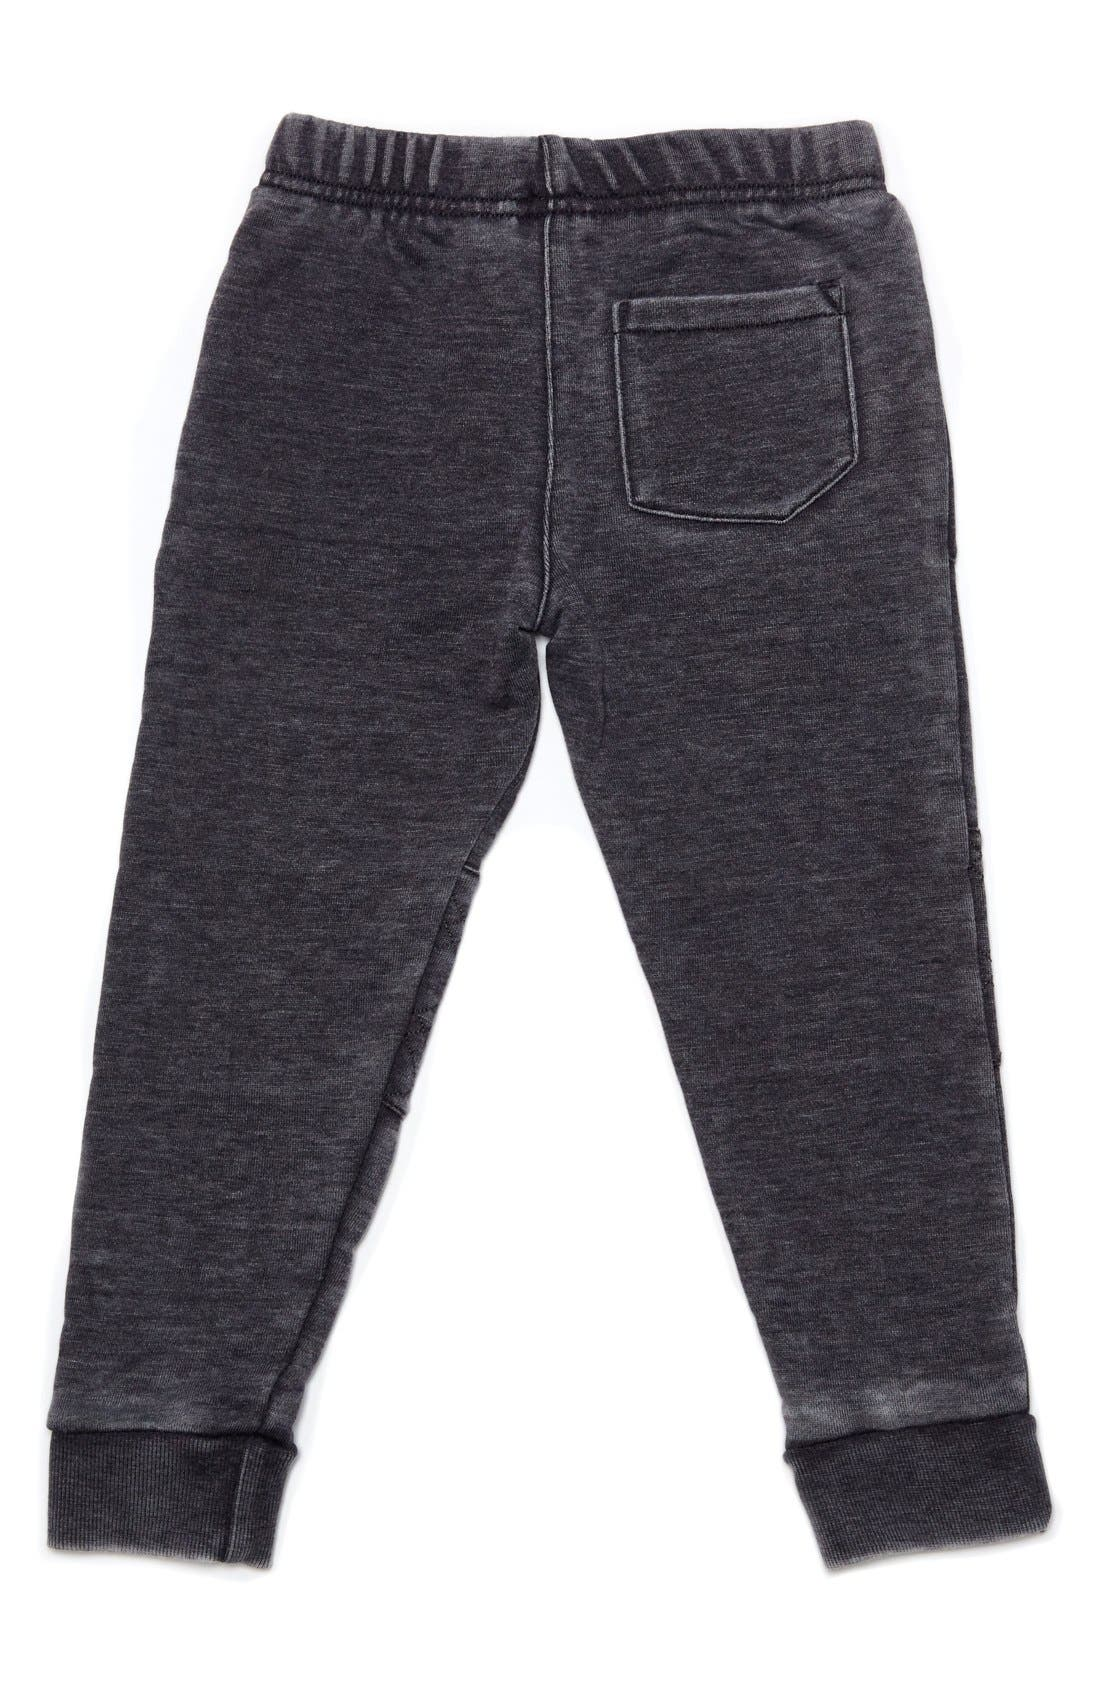 Quilted Jogger Pants,                             Alternate thumbnail 2, color,                             Grey